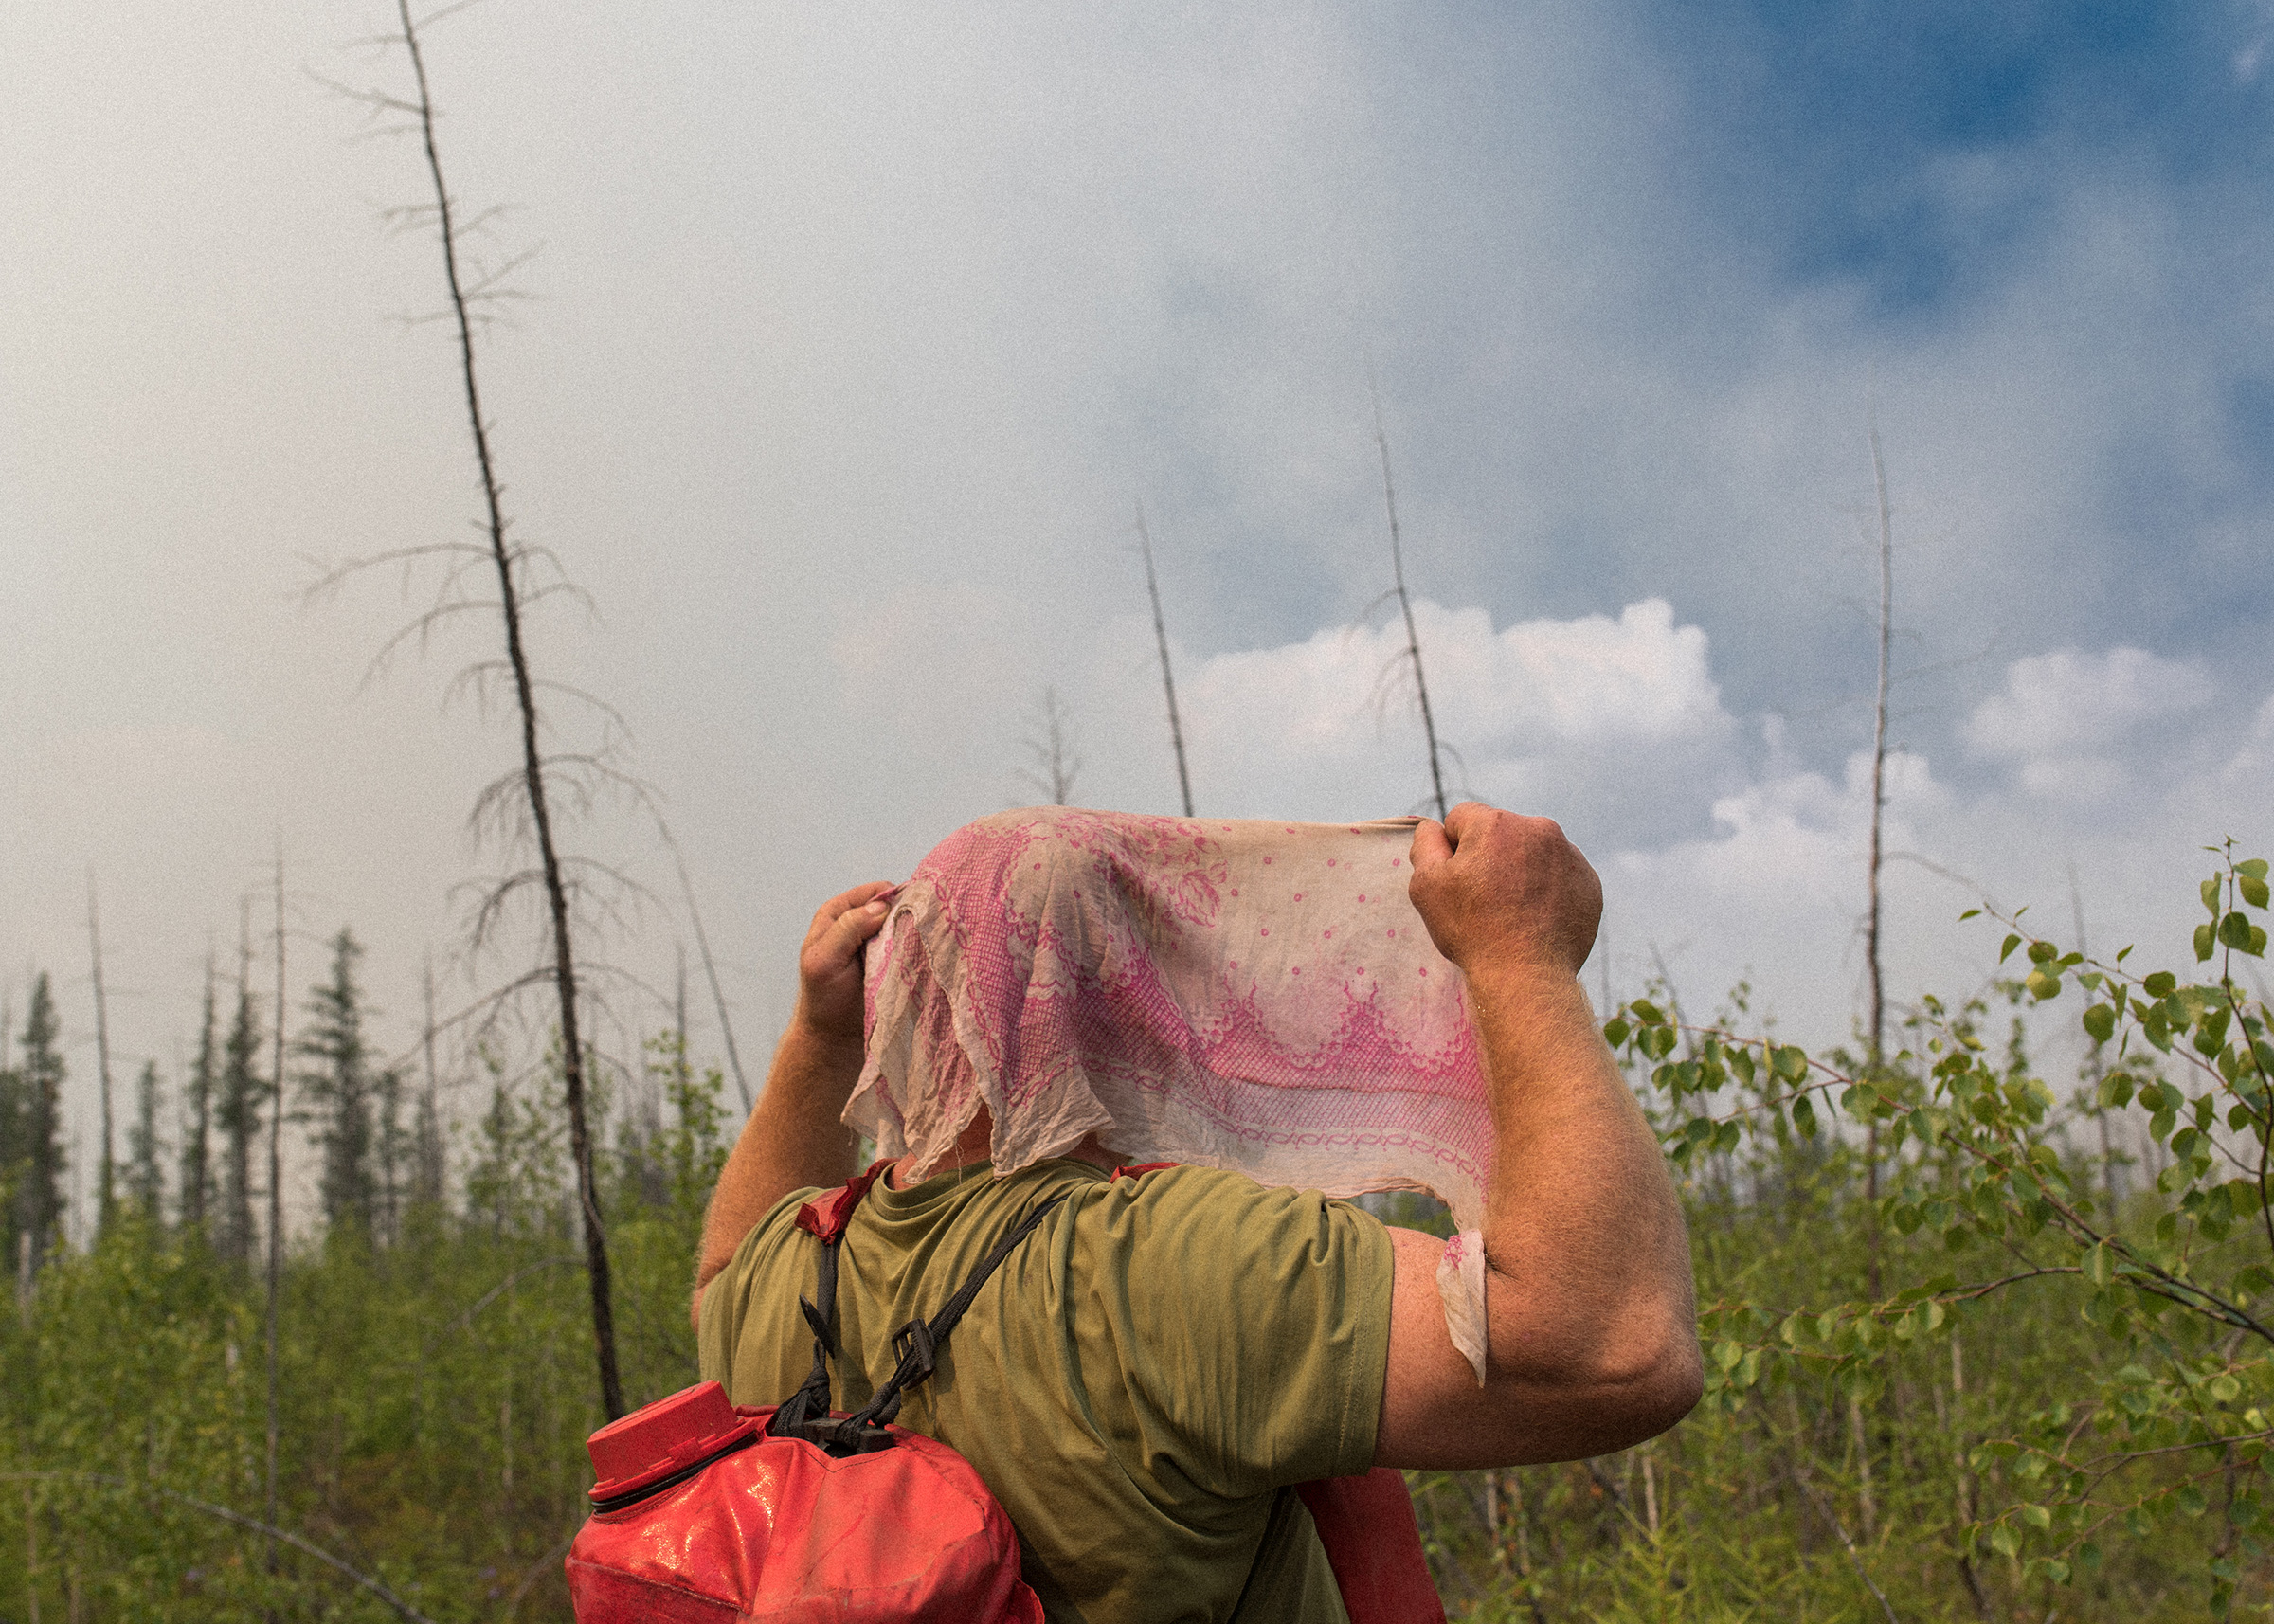 An employee of yhe Aerial Forest Protection Service of the Russian Federation puts a wet handkerchief on his head—an effective DIY protective against the dangers of wildfire smoke.